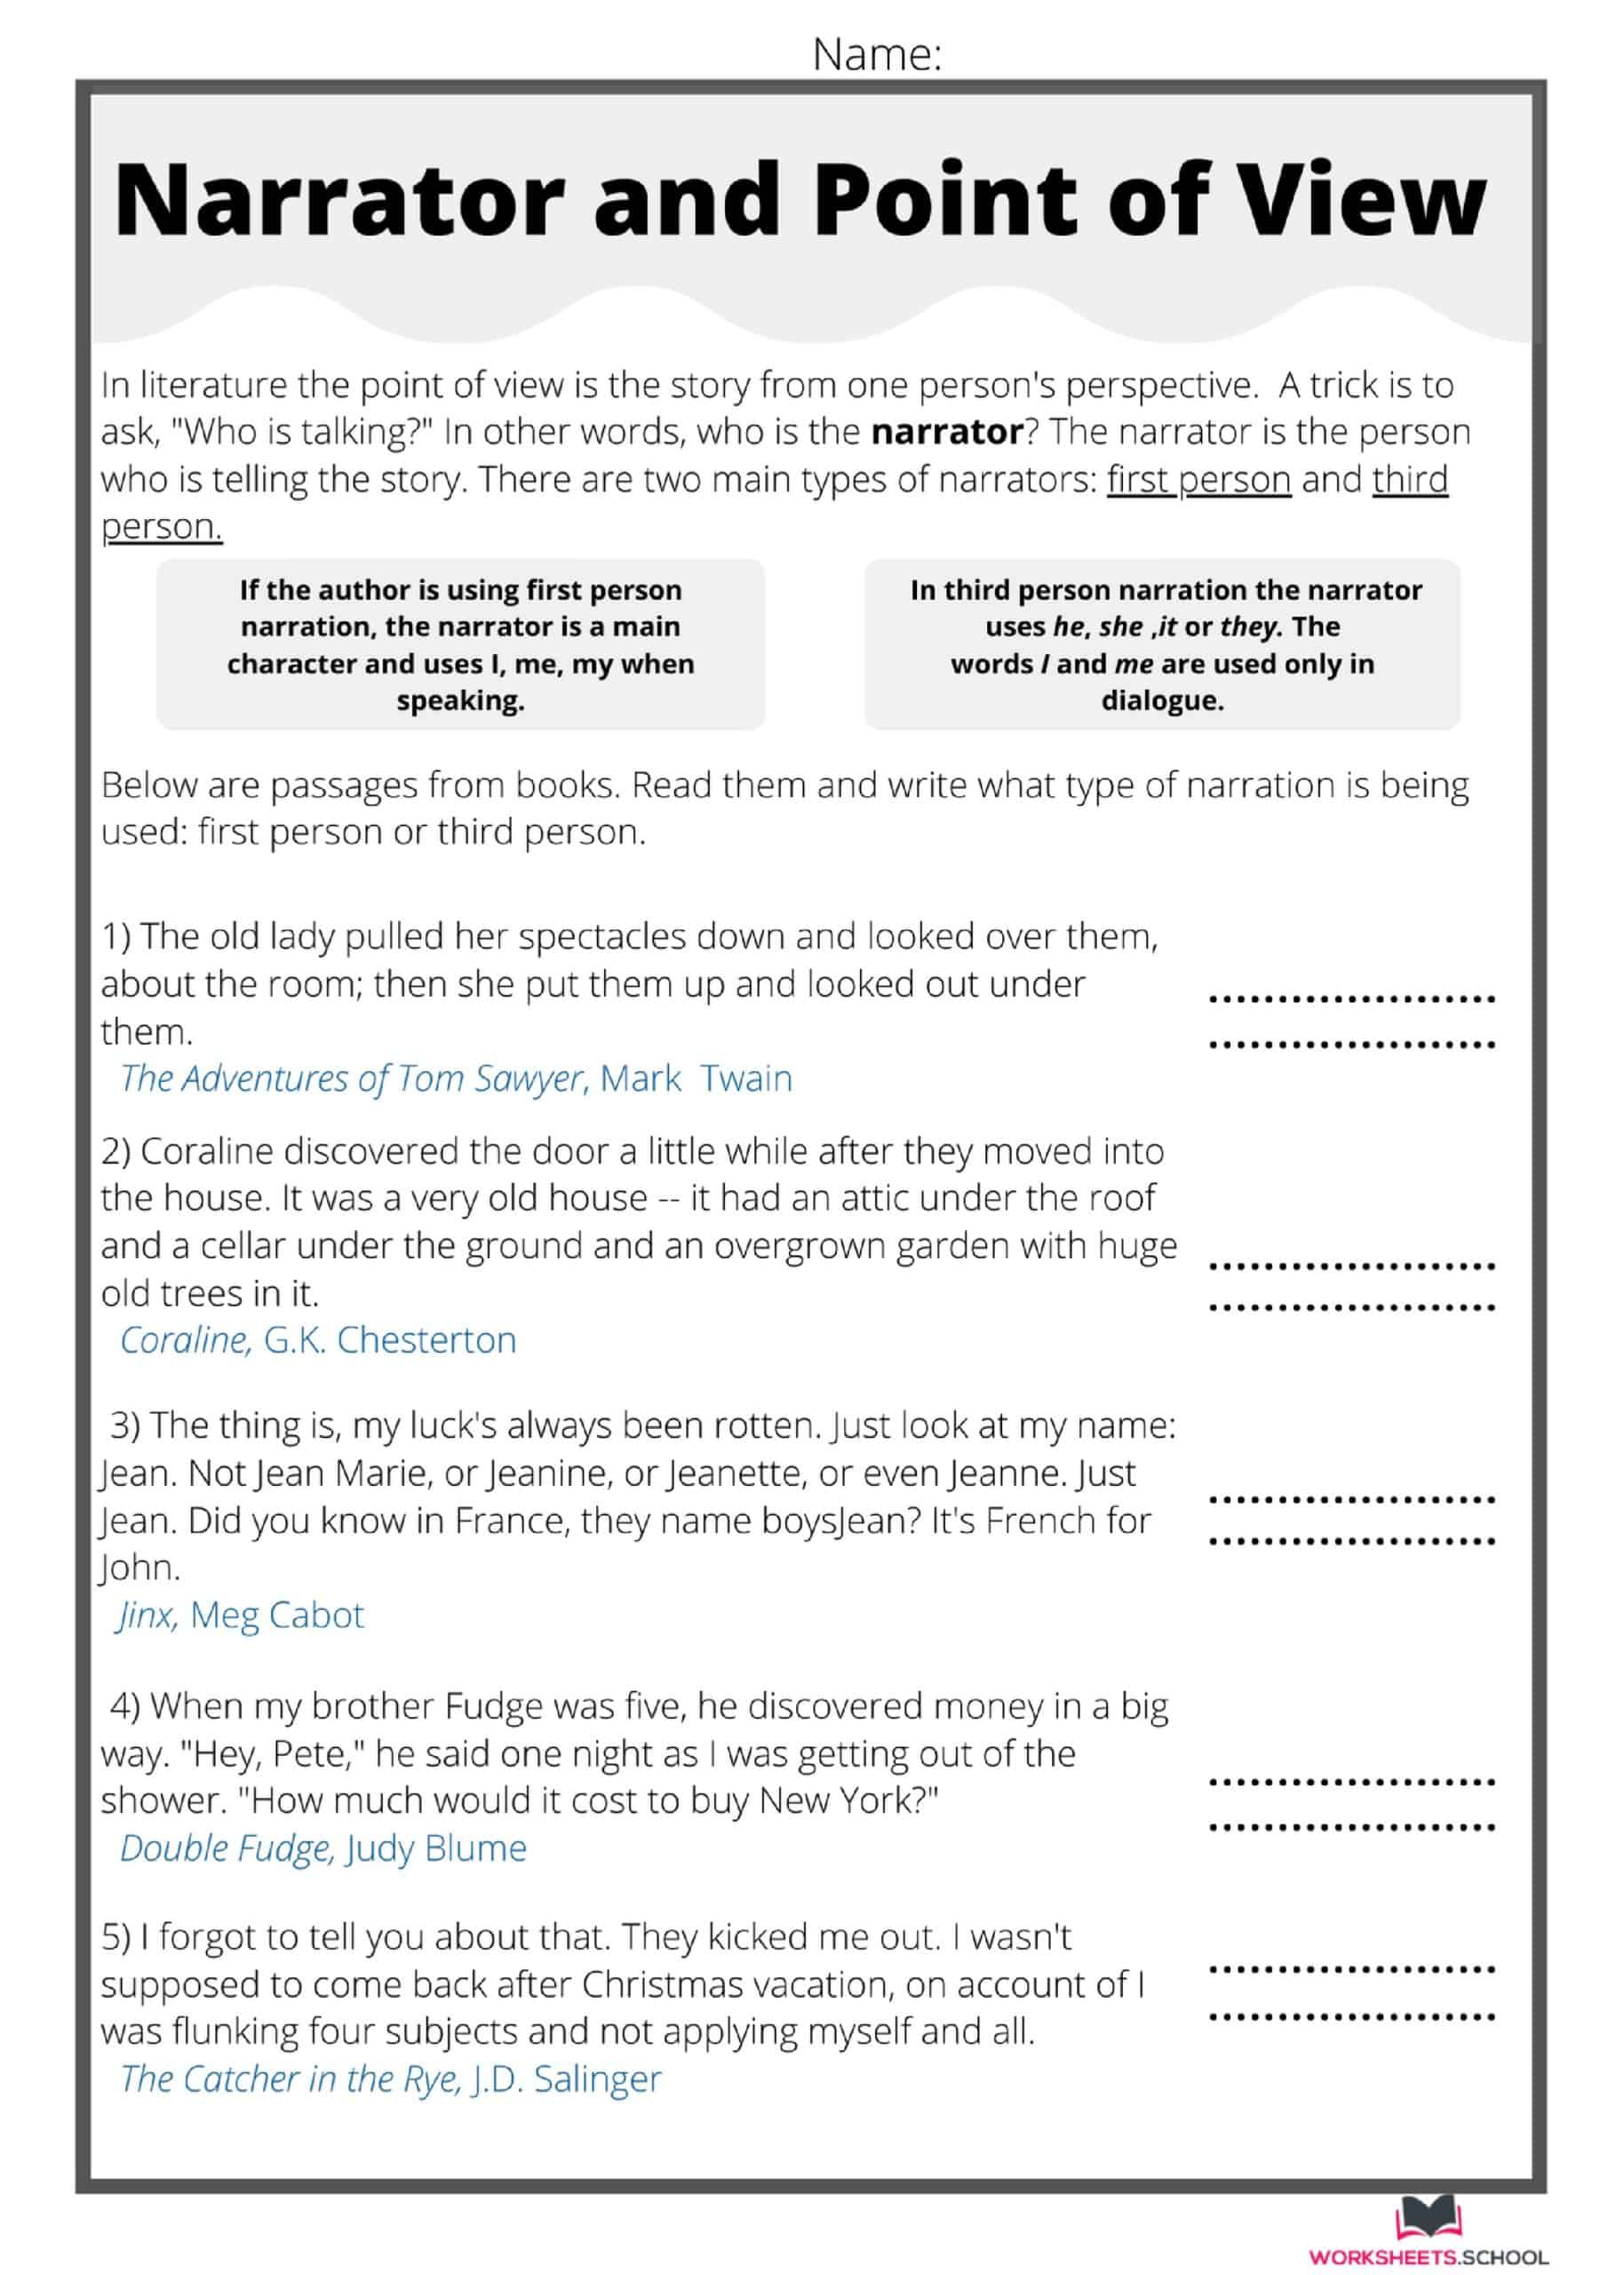 Narrator and Point of View Worksheet 2